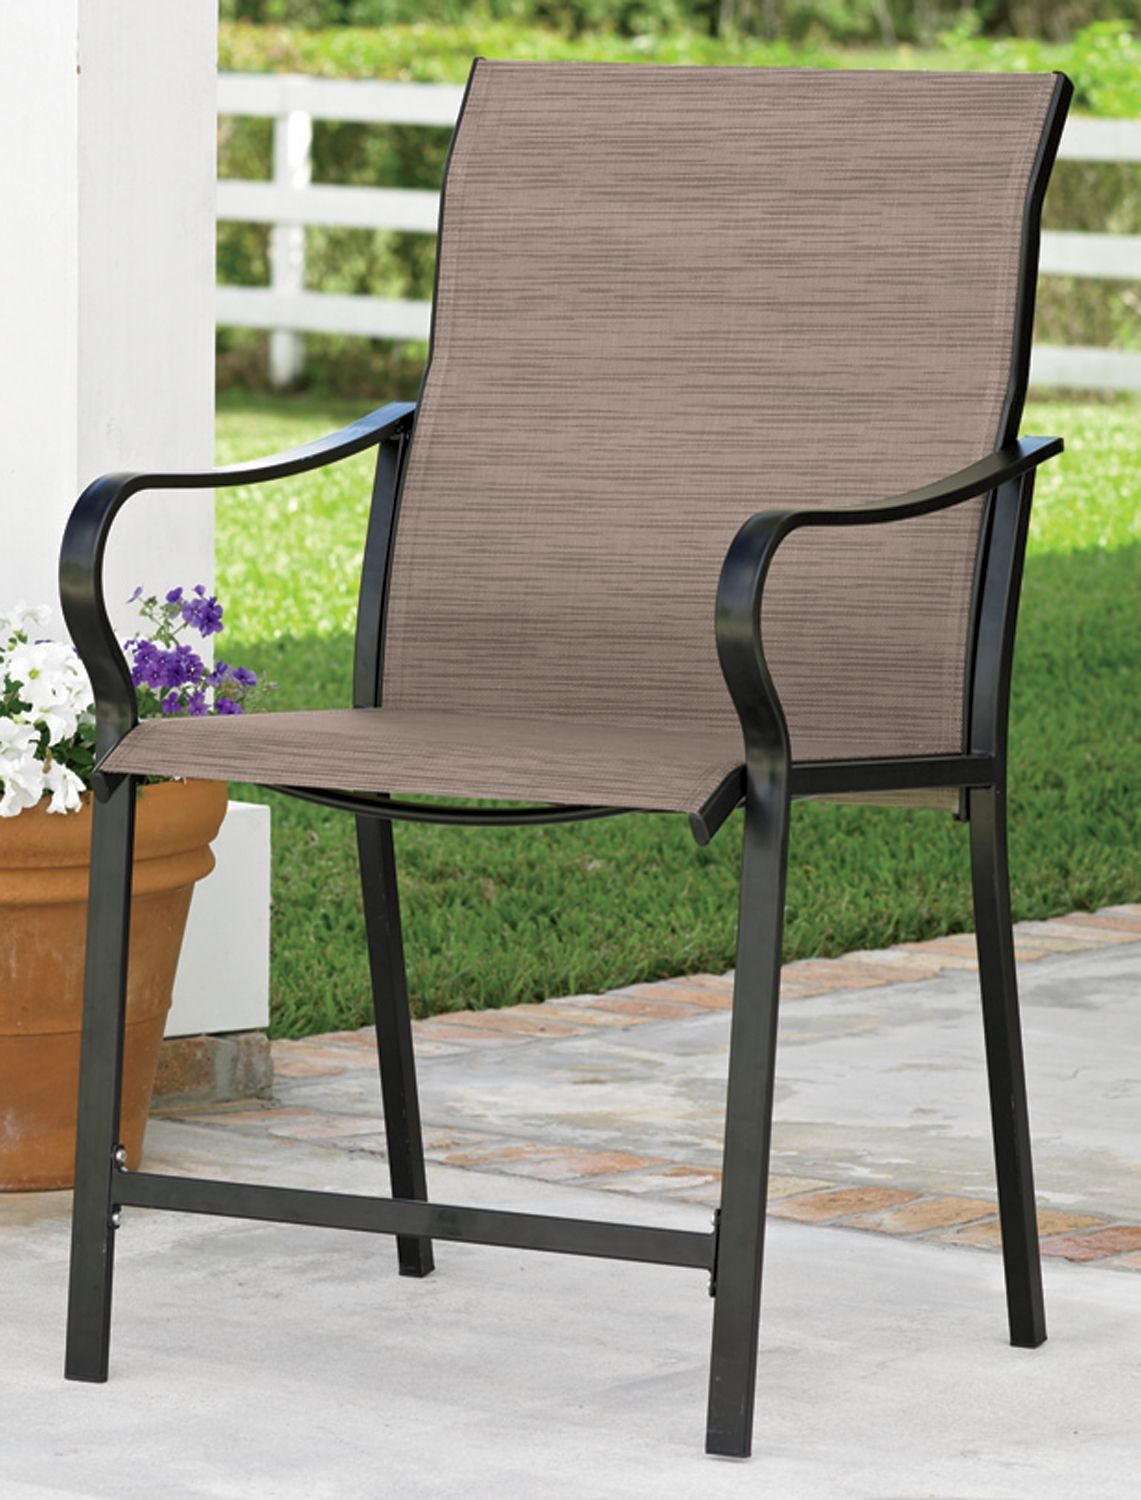 24 inch high folding chairs deck uk extra wide back patio chair portable